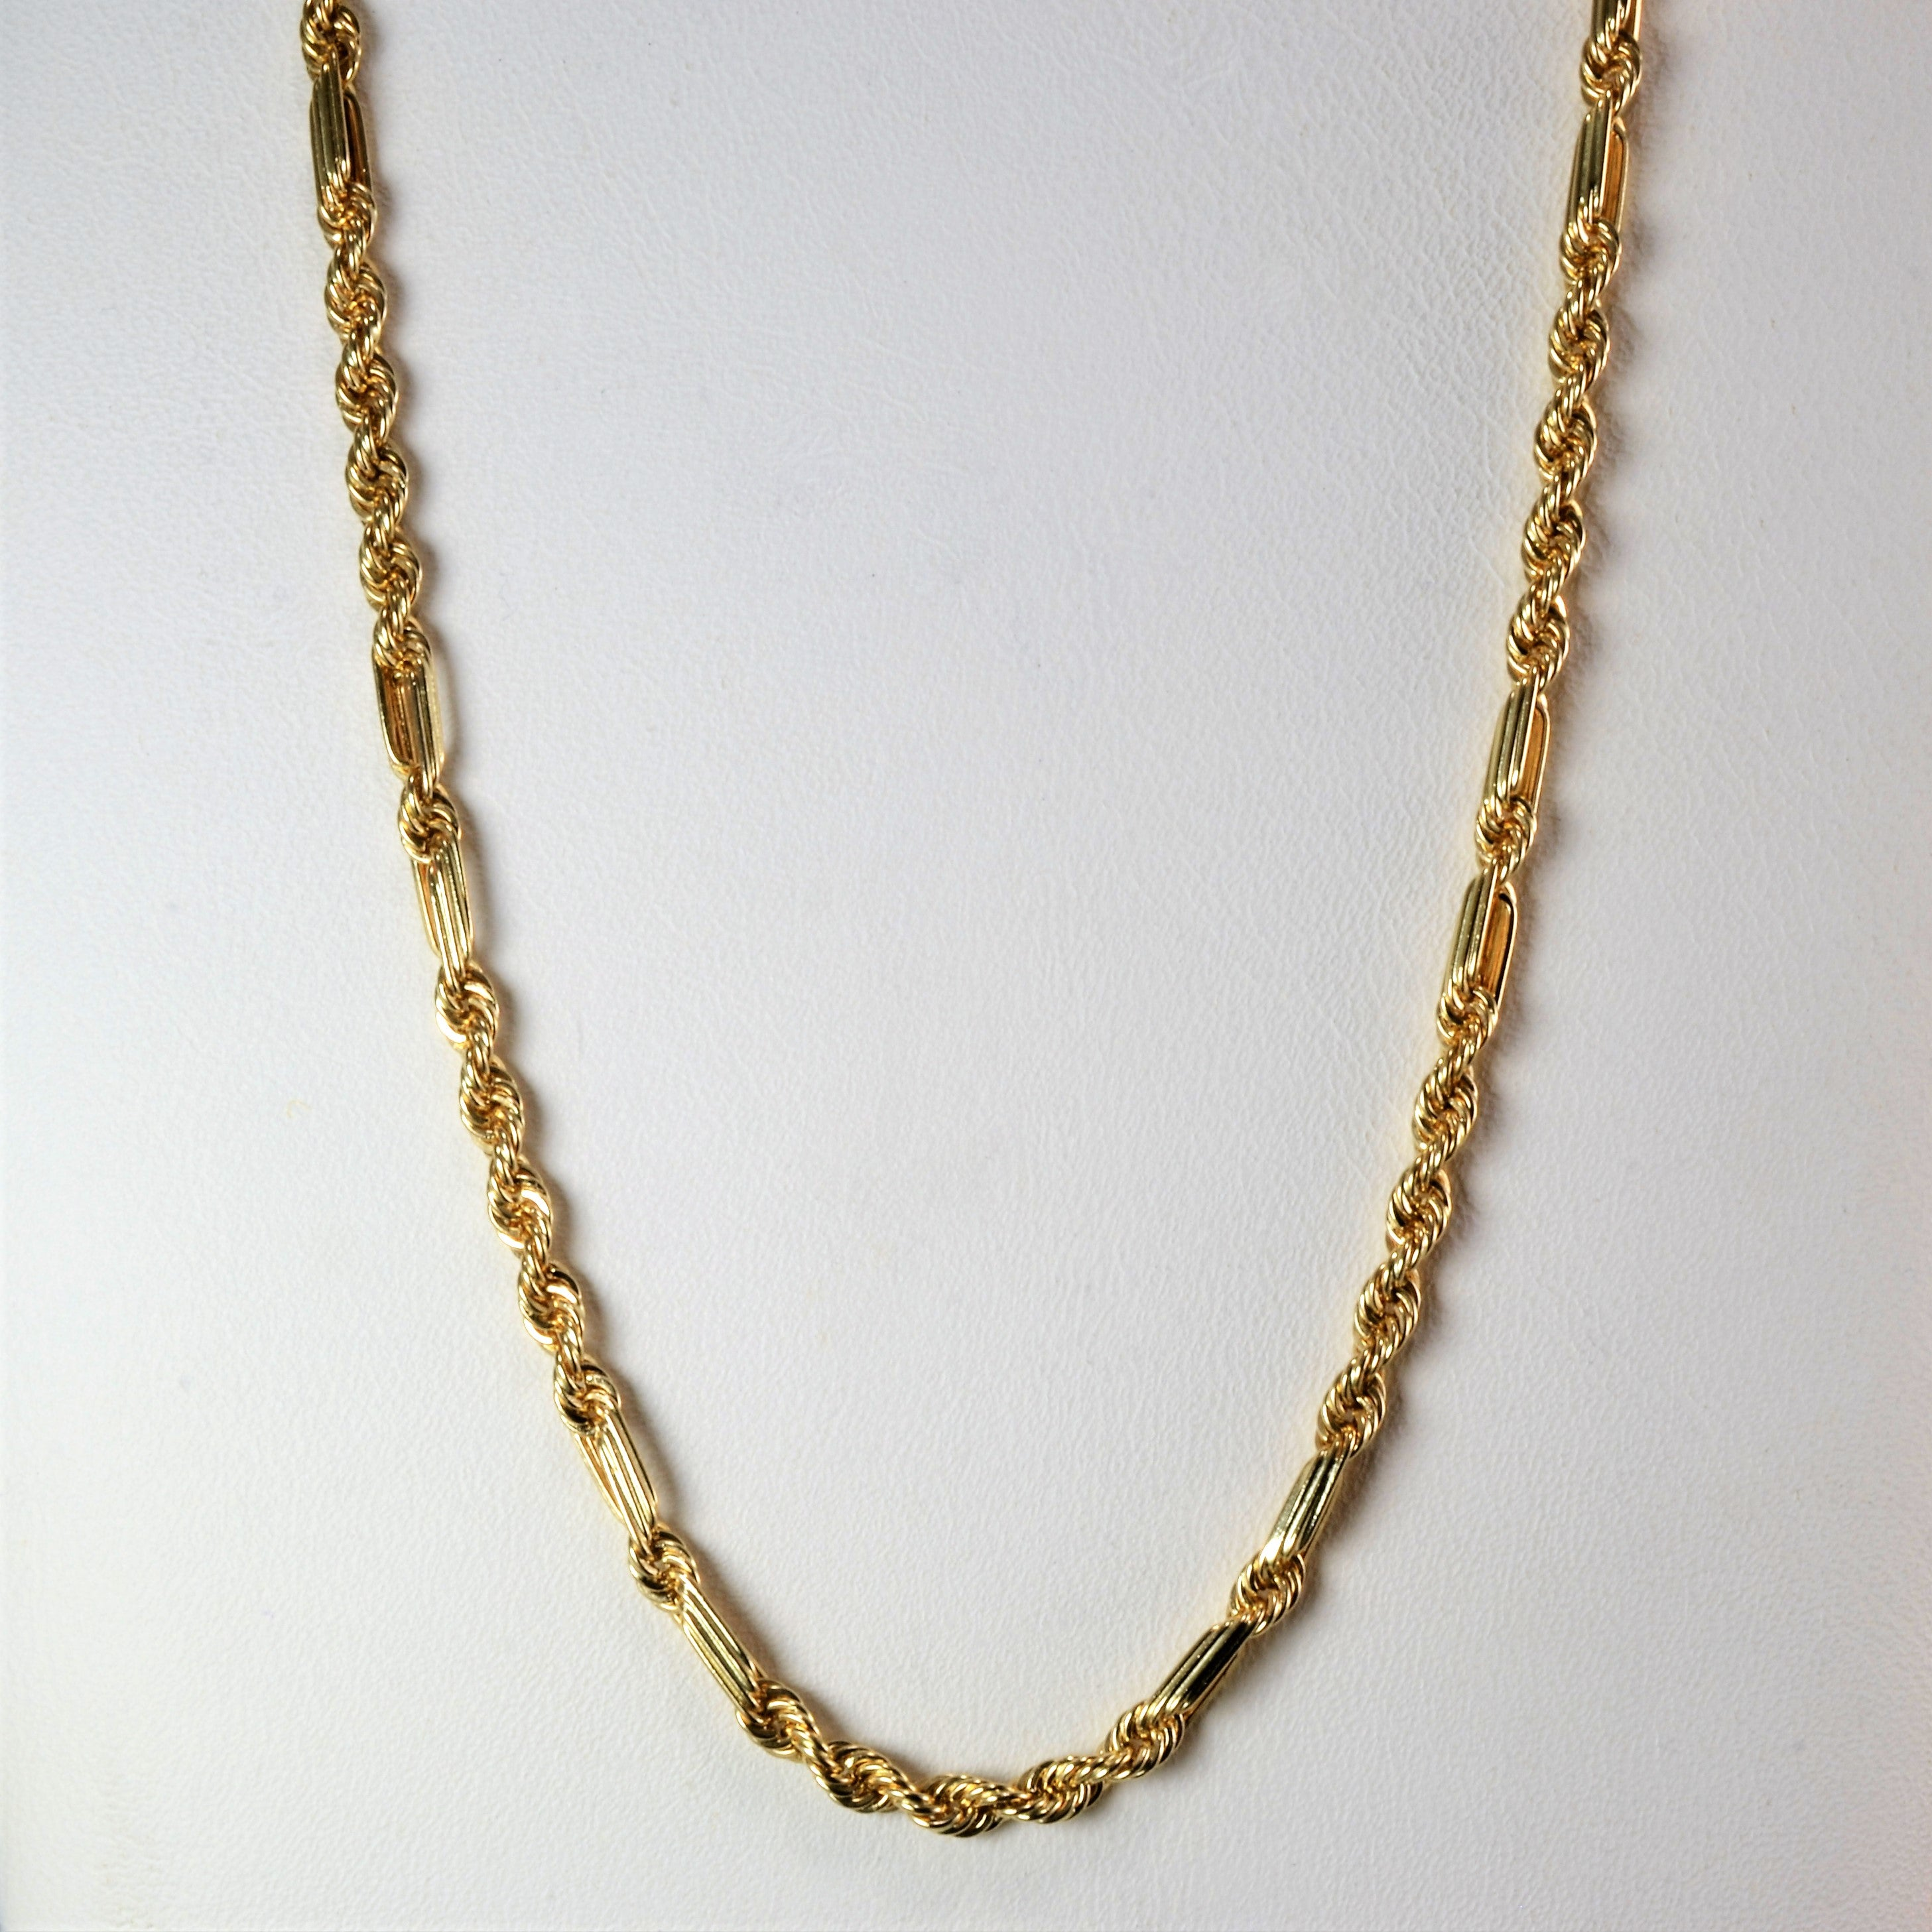 10K Yellow Gold Rope Chain | 24''|